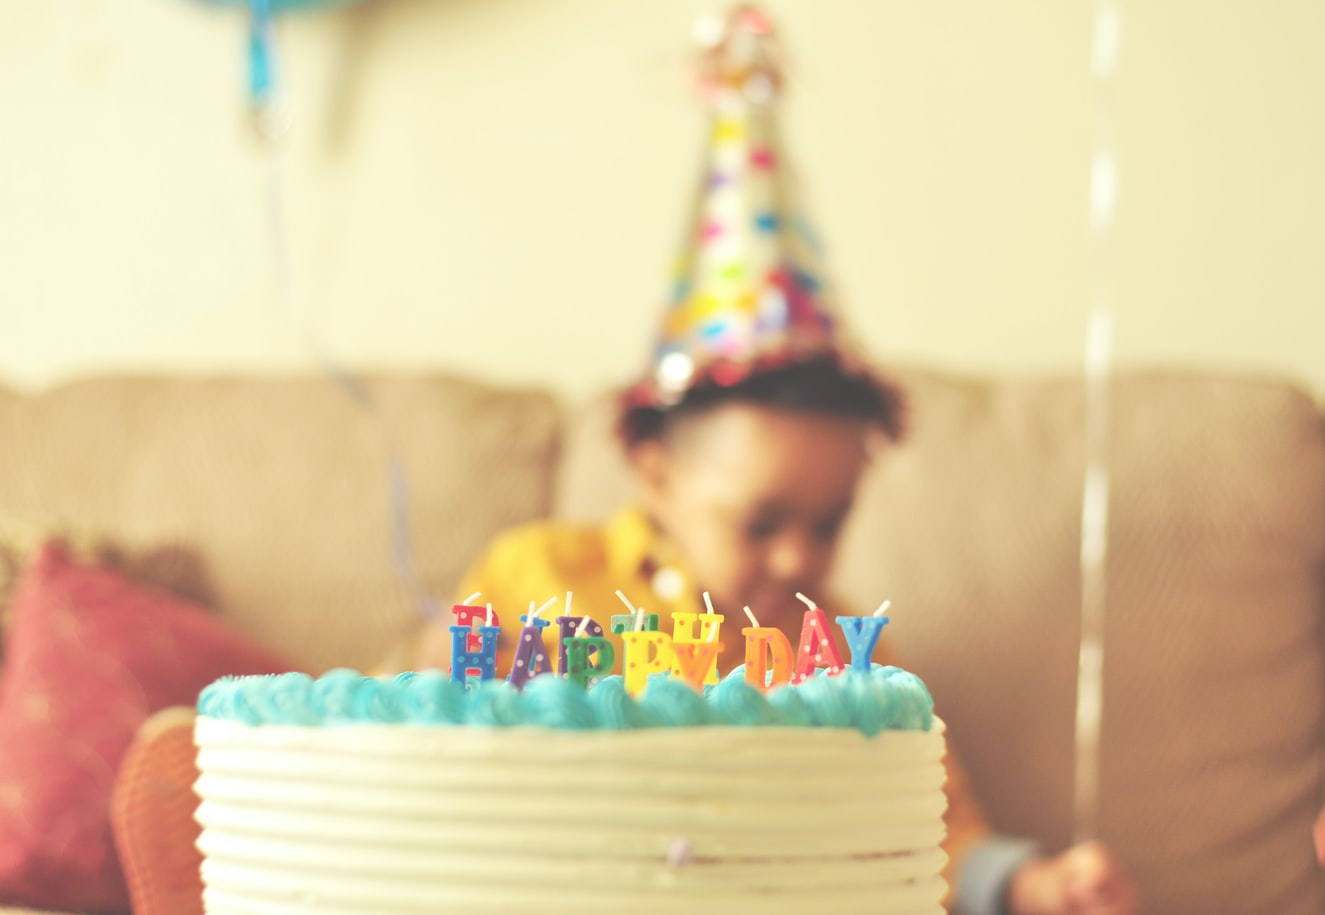 Parties are exciting for toddlers, and these ideas for birthday parties make it easy to have a great time